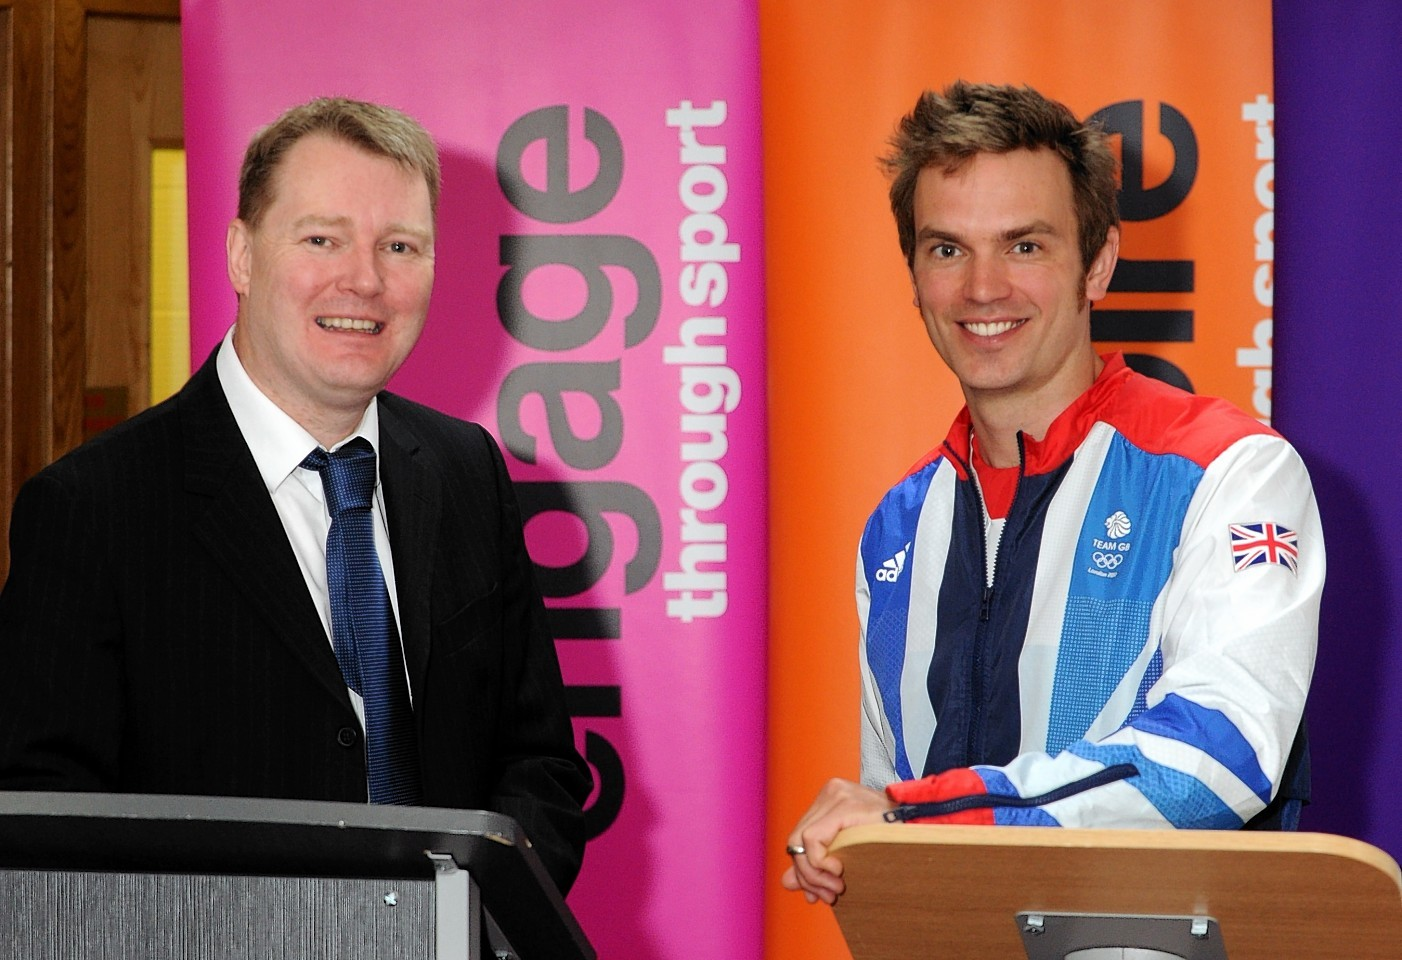 Aberdeen chief executive Duncan Fraser and Olympic gold medal canoeist Tim Baillie